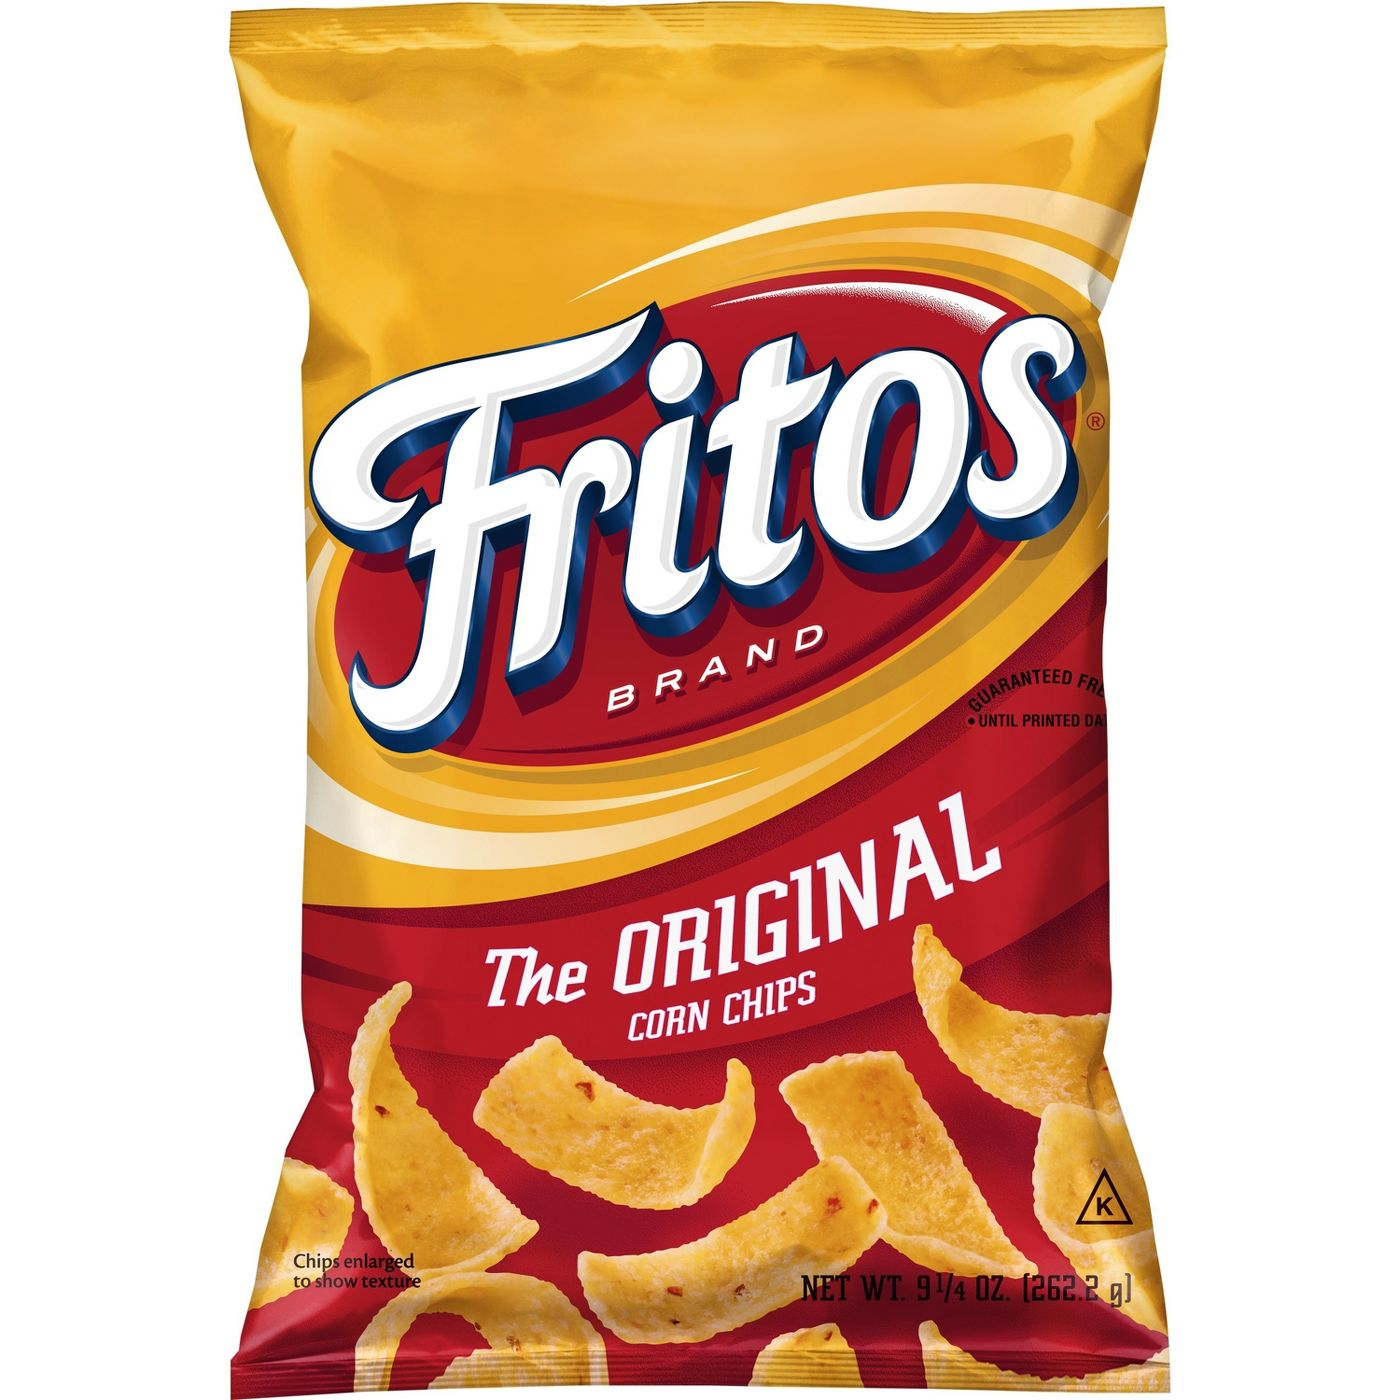 Fritos Original Corn Chips (XL 11oz bag) - A Taste of the States